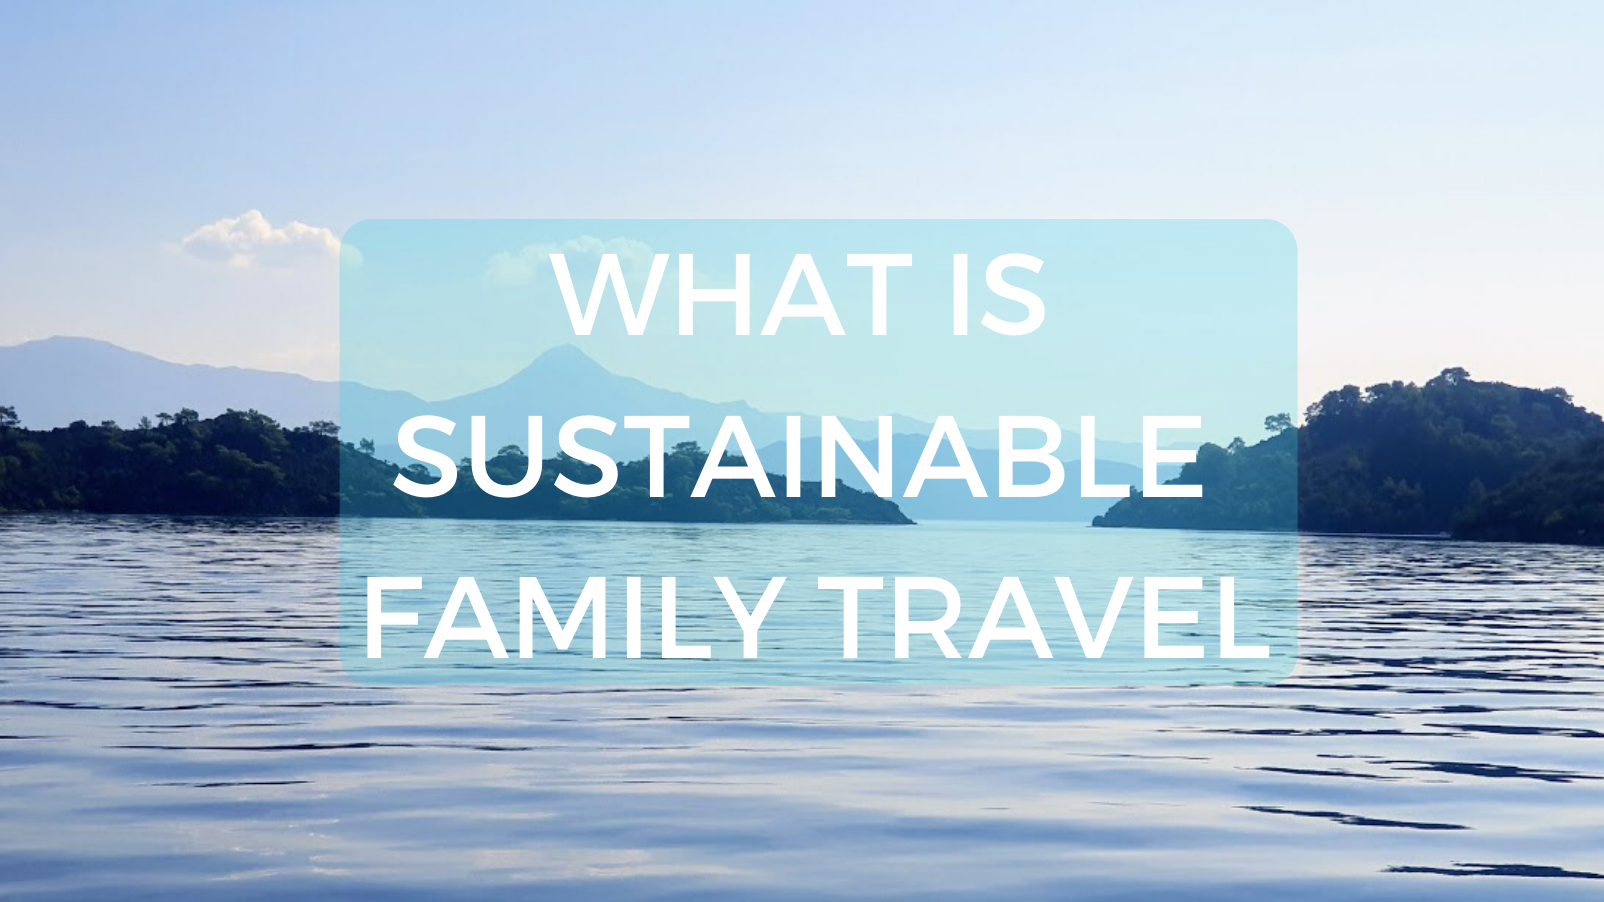 What is Sustainable Family Travel